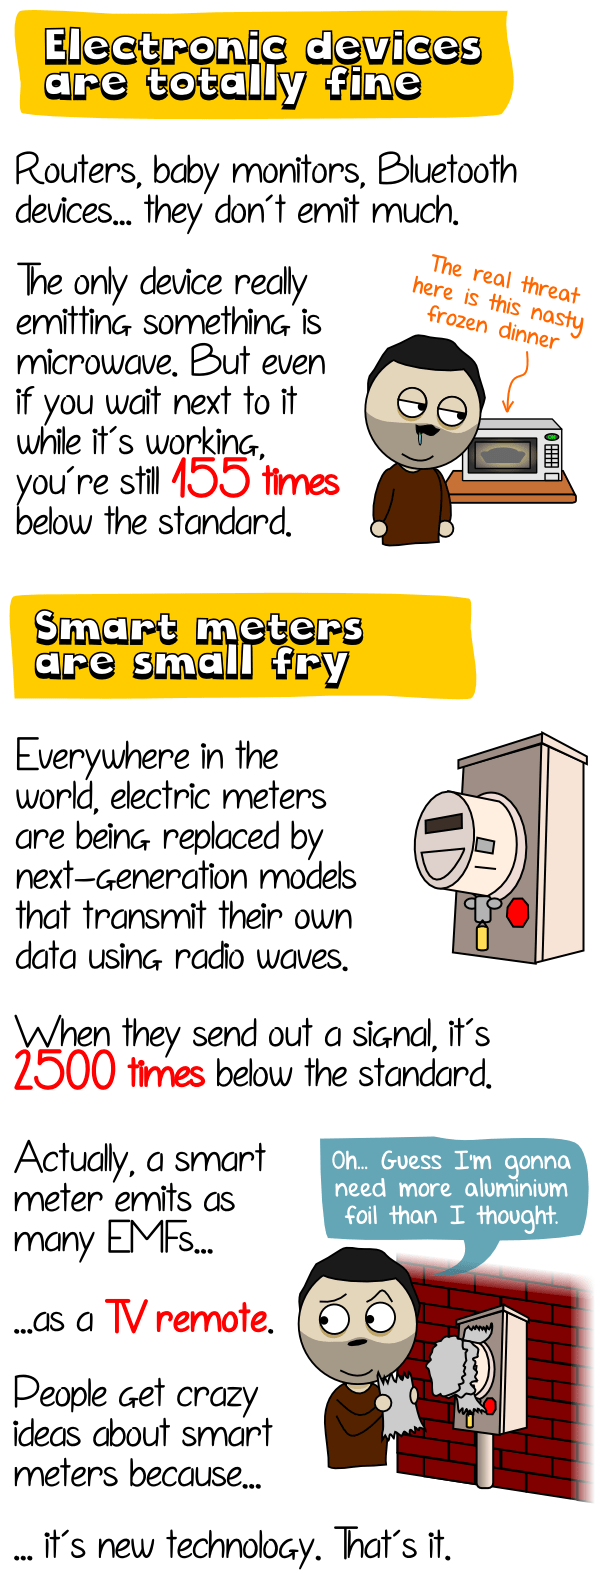 Smart electric meters emit as much EMFs as a TV remote